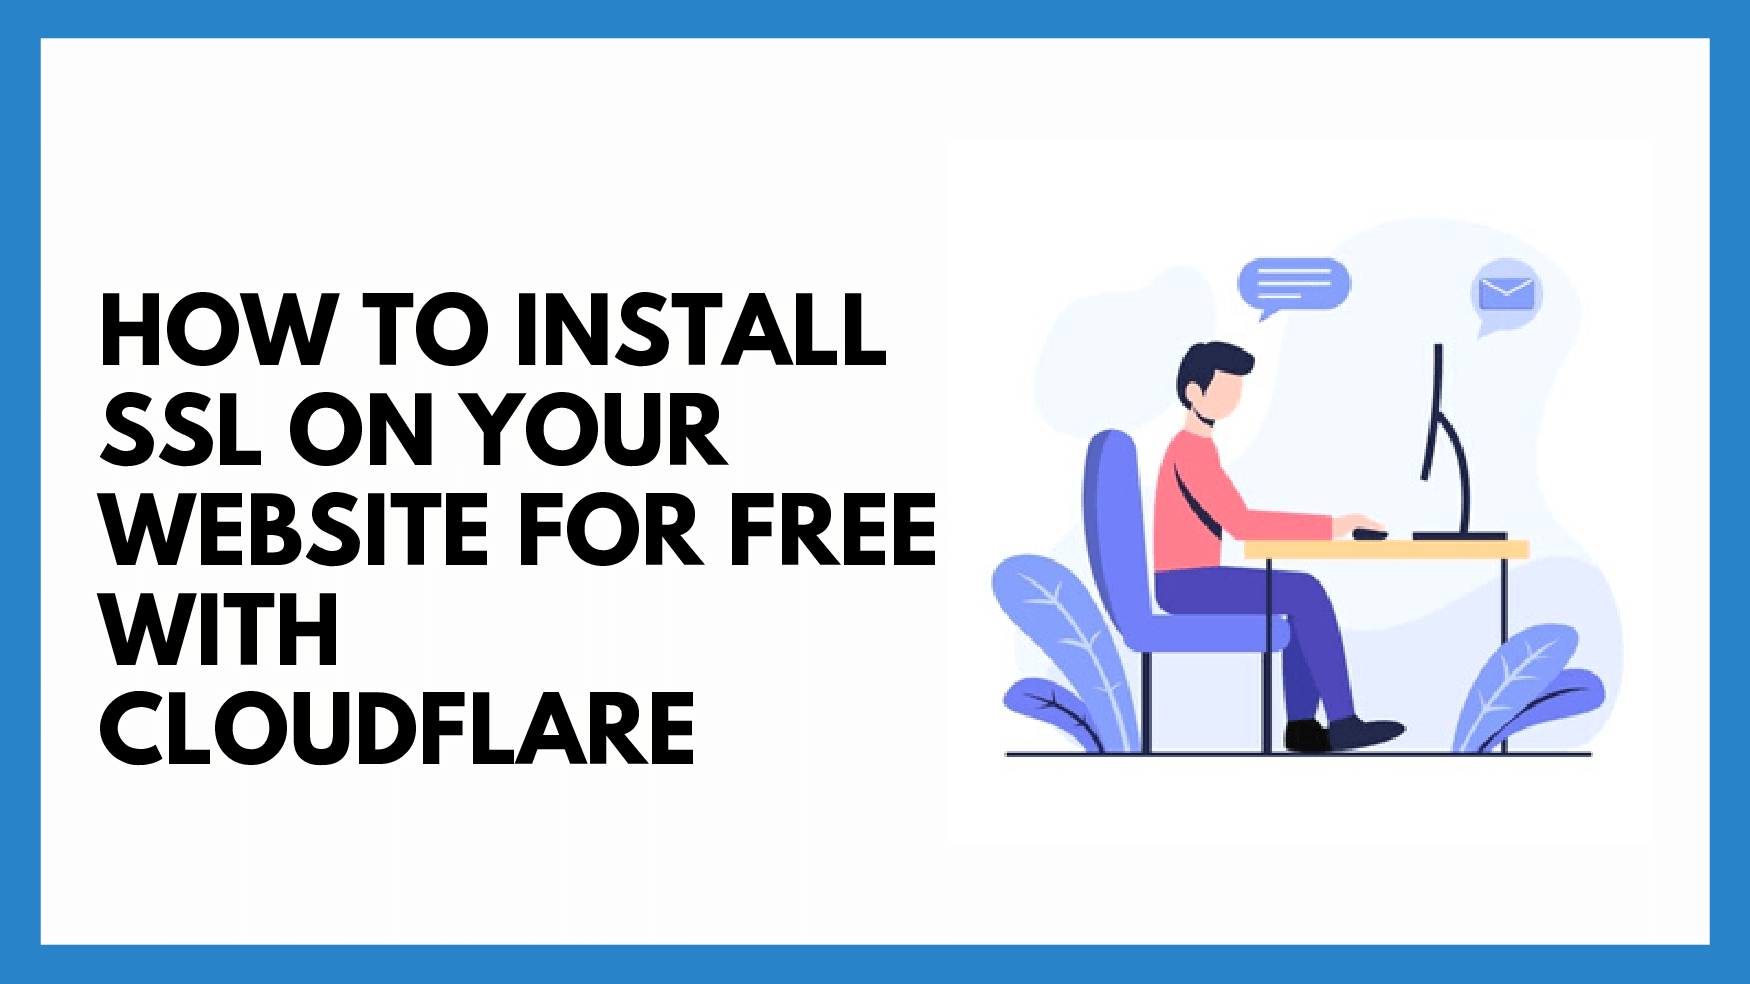 How To Install SSL on Your Website for Free with CloudFlare